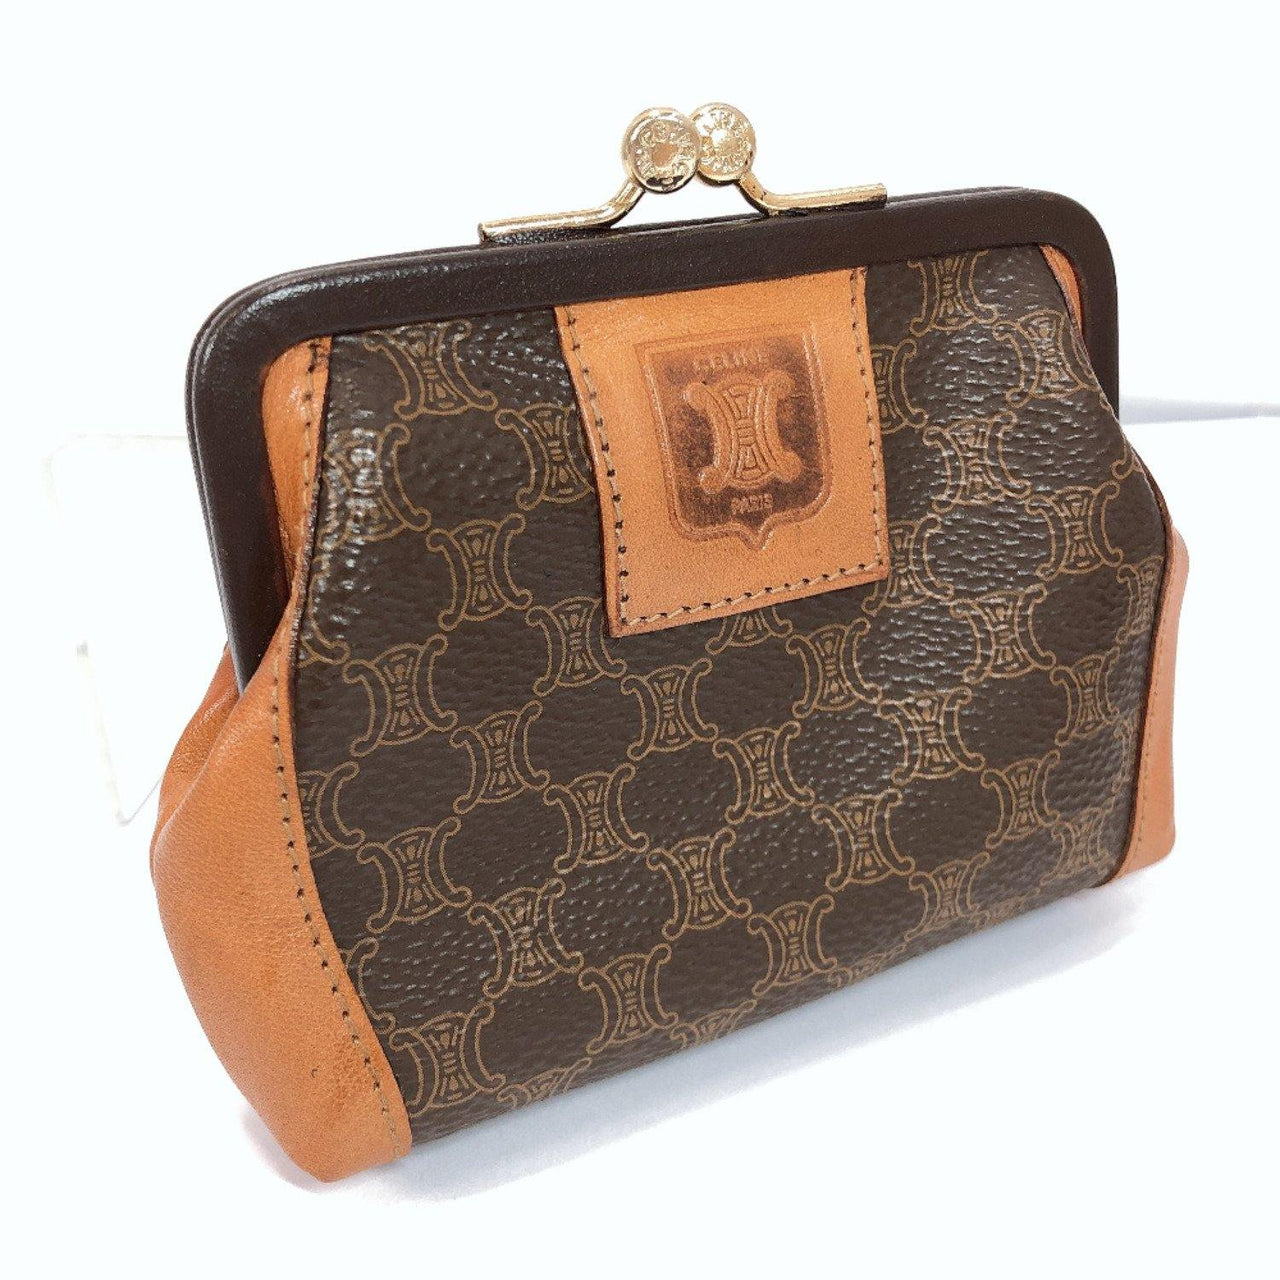 CELINE coin purse purse with a clasp Macadam pattern leather Brown Women Used - JP-BRANDS.com